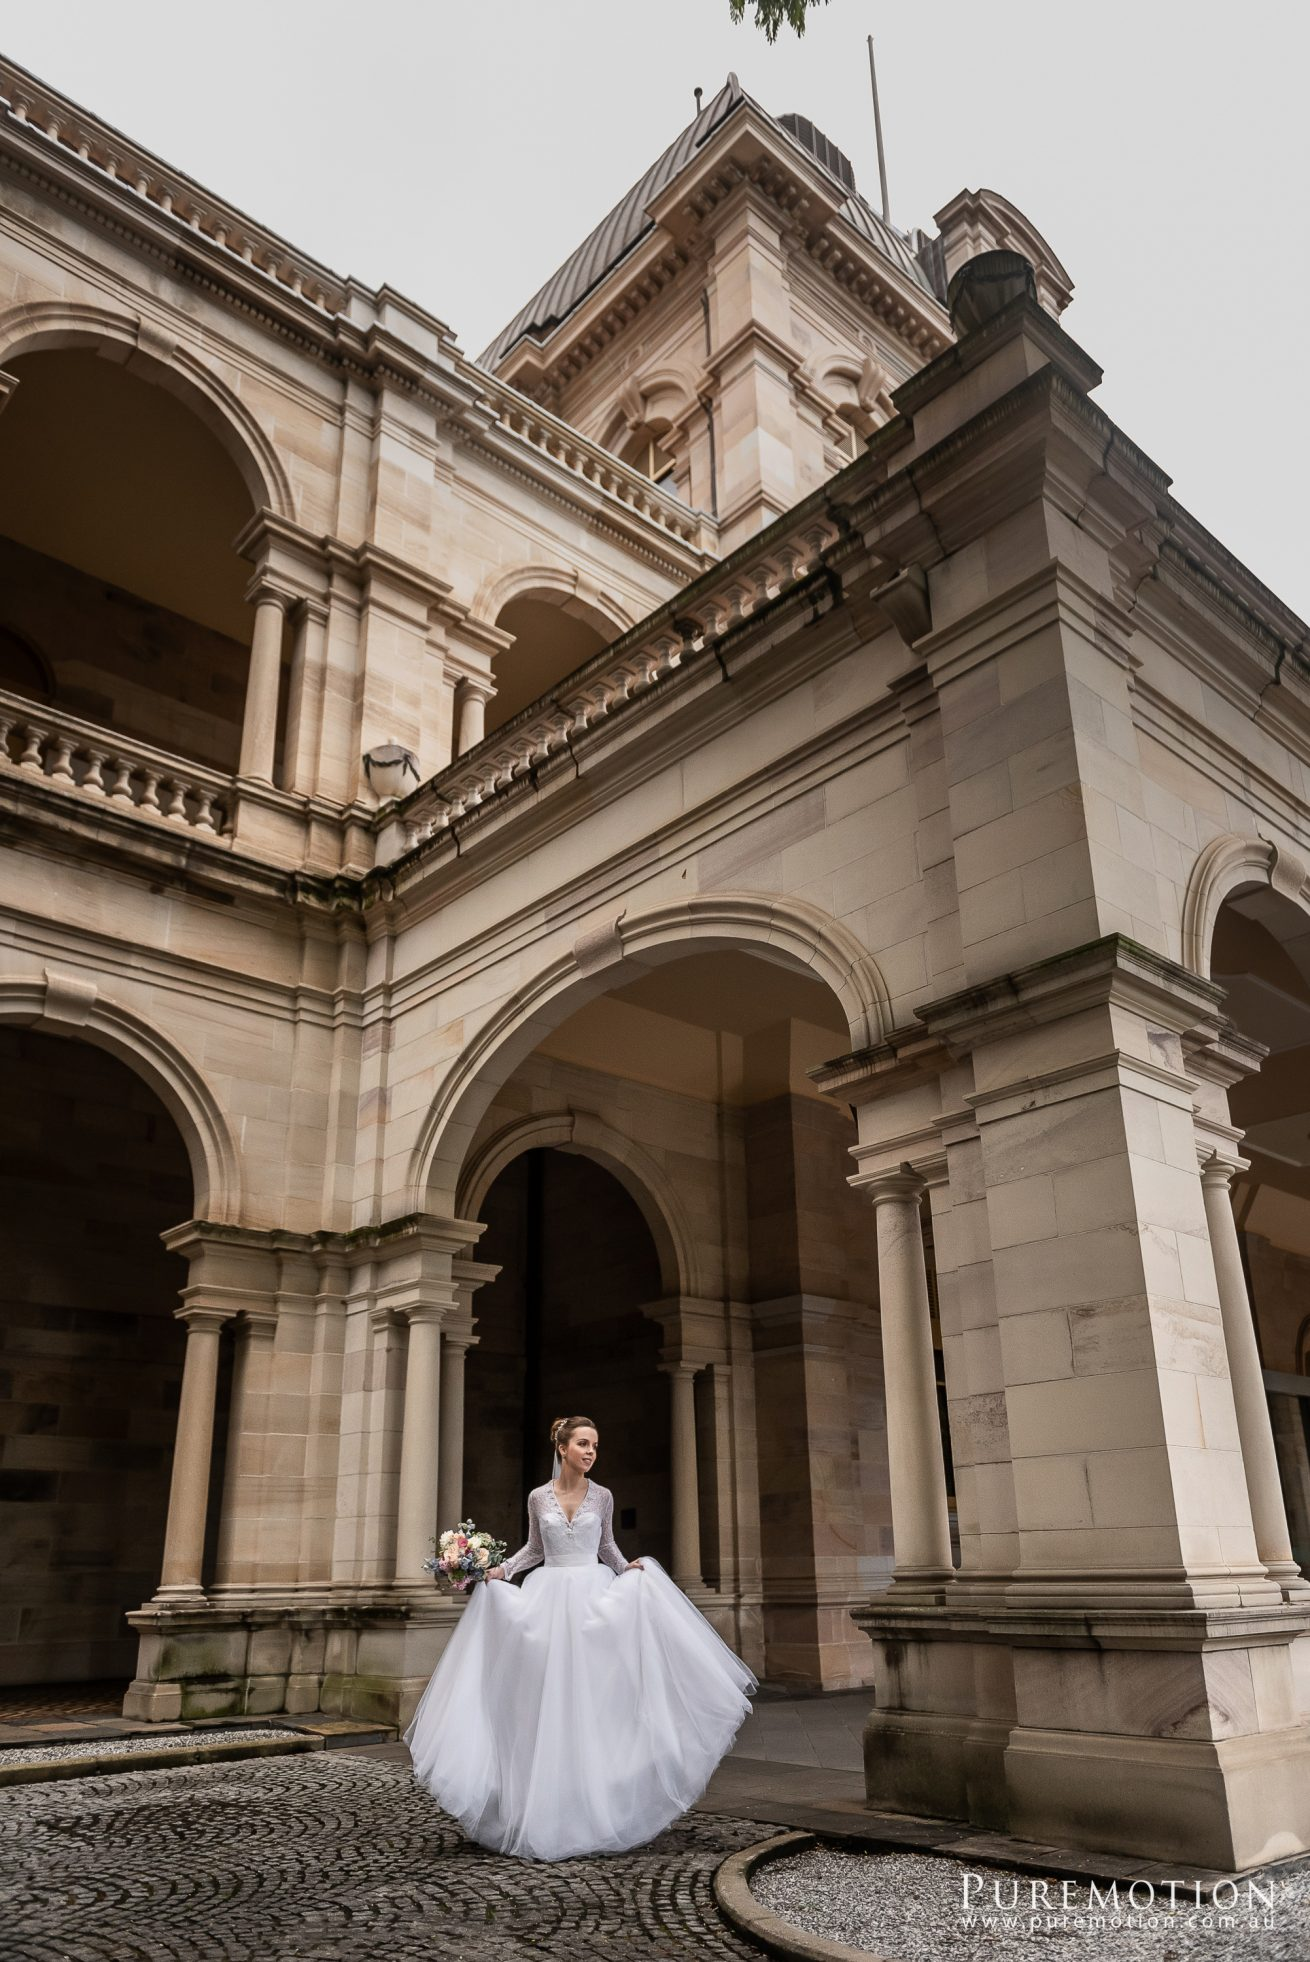 190517 Puremotion Wedding Photography Alex Huang Brisbane EmmaBen album-0029